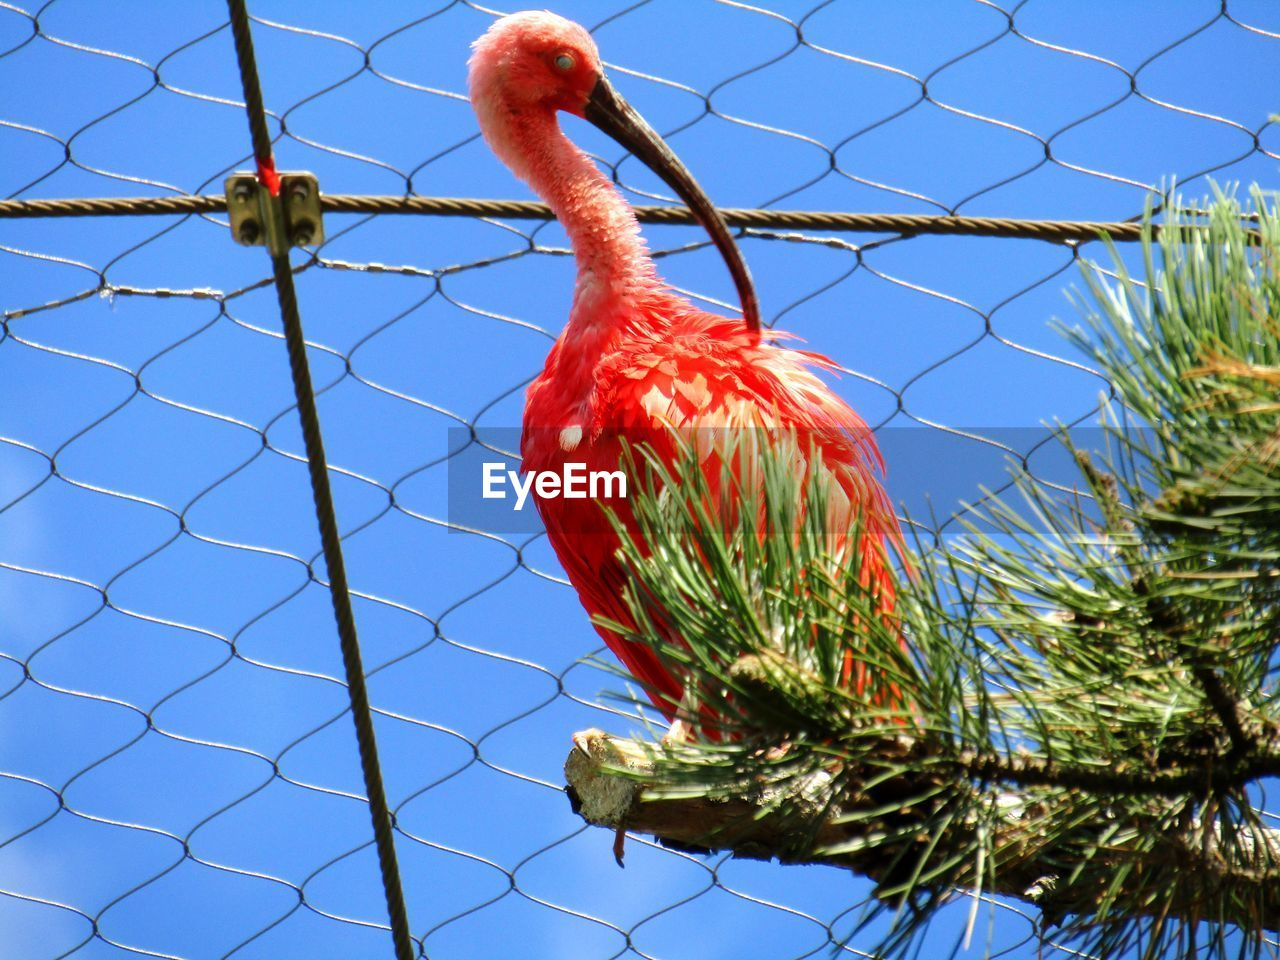 bird, animal themes, animal, vertebrate, one animal, nature, no people, red, animal wildlife, day, sky, animals in the wild, plant, low angle view, perching, tree, blue, fence, outdoors, clear sky